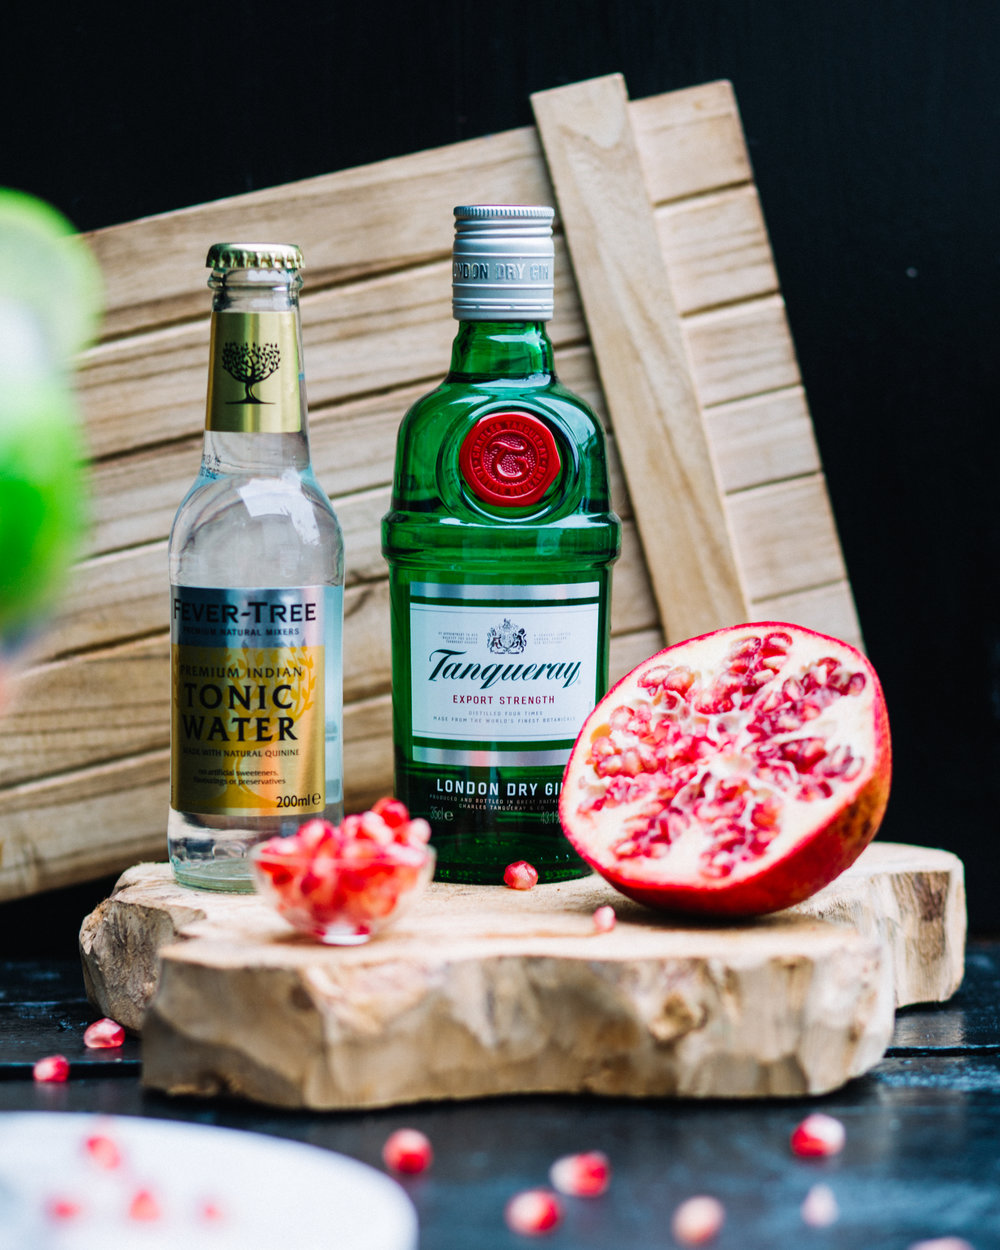 Letscoakcocktail - tanqueray5.jpg